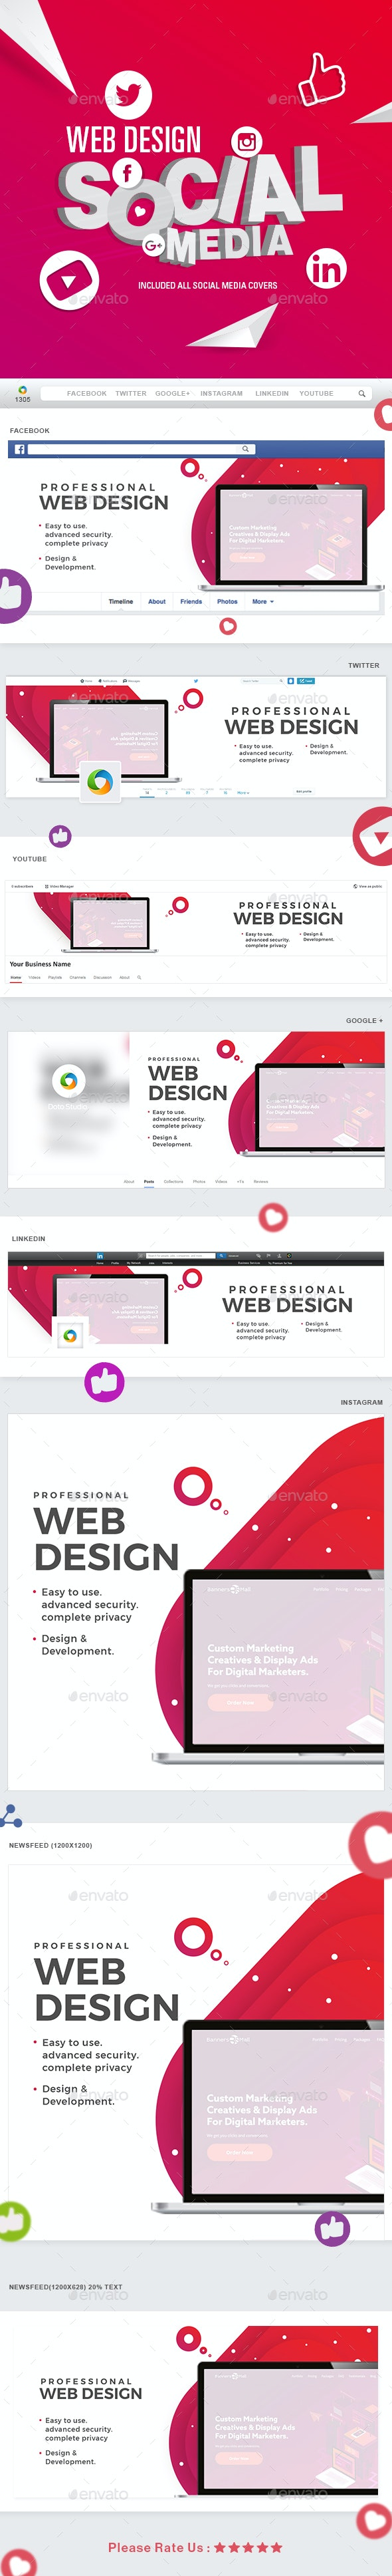 Web Design Social Media Pack - Miscellaneous Social Media